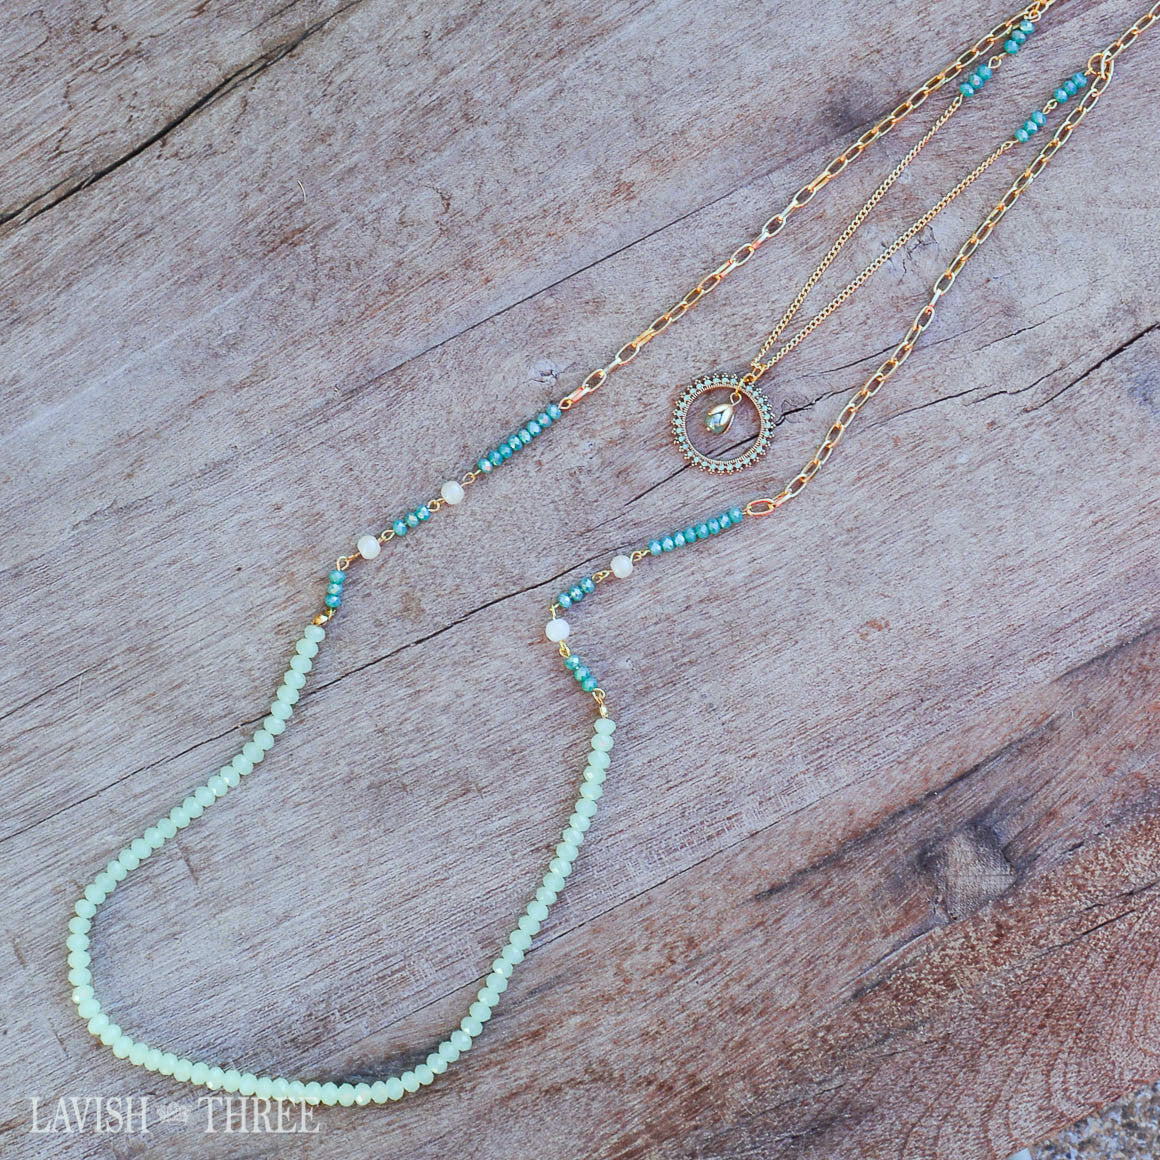 Gold chain necklace with blue and green beads and pendant